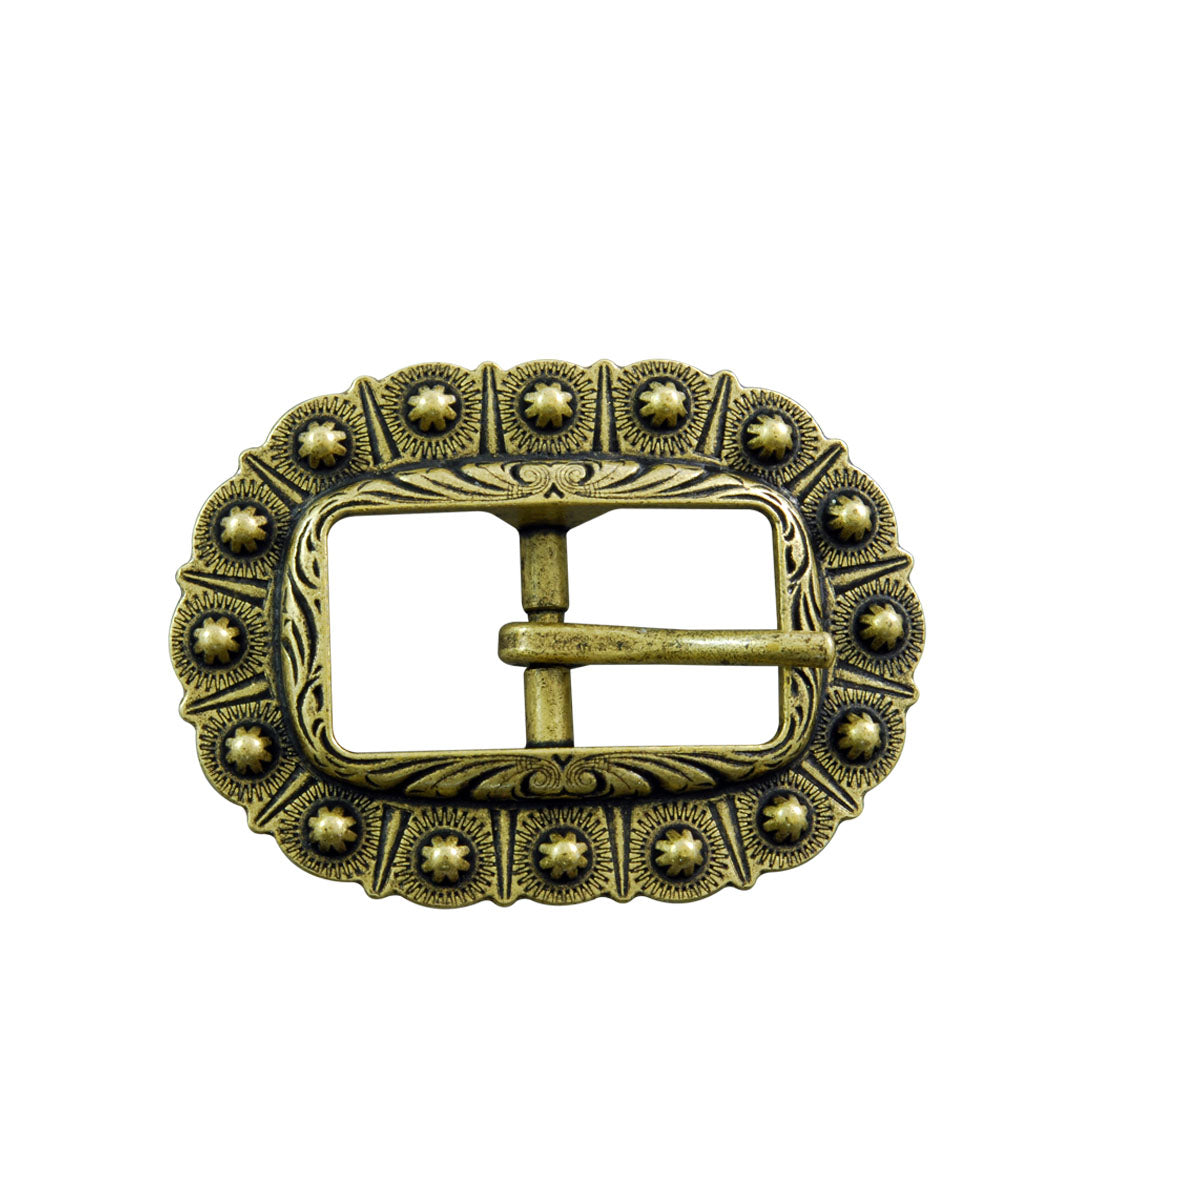 Berry Style Center Bar Belt Buckle Type 2 (Choose Size and Color at Checkout) - American Leatherworks